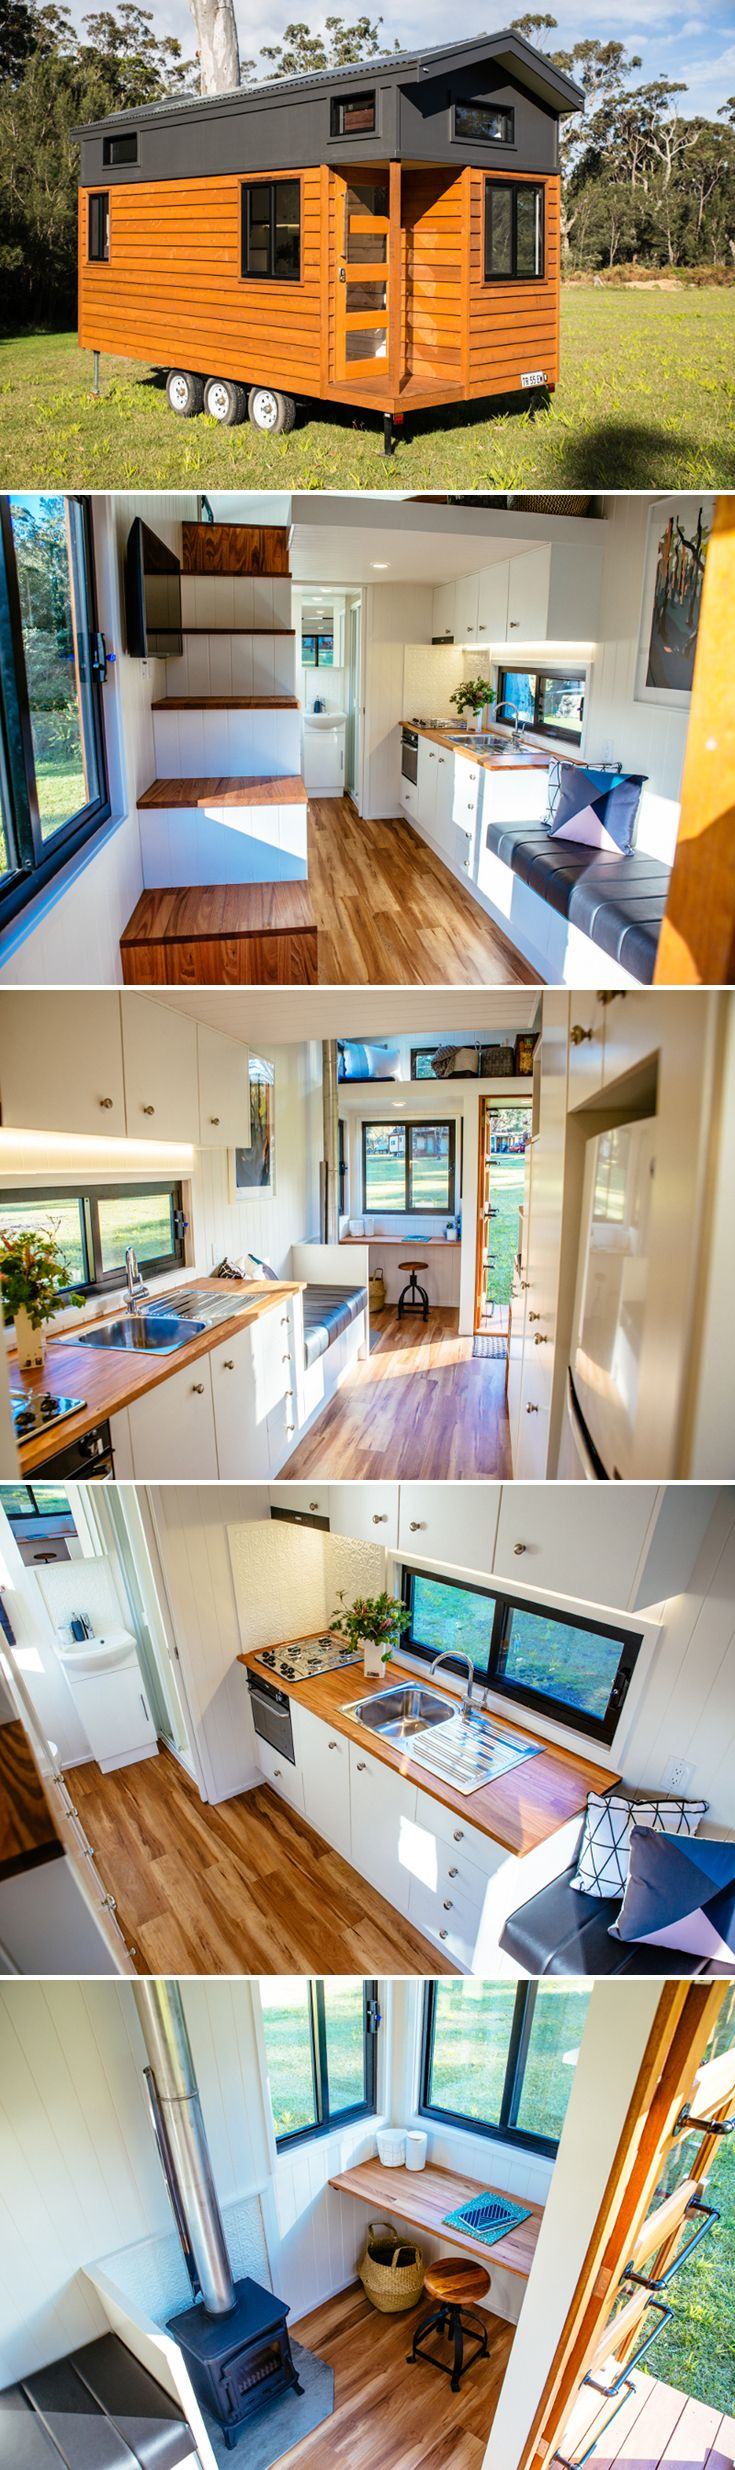 A 8'x20' tiny house with two lofts: one large bedroom loft and one storage/single sleeper loft. Solar power system with three panels and LED lighting.